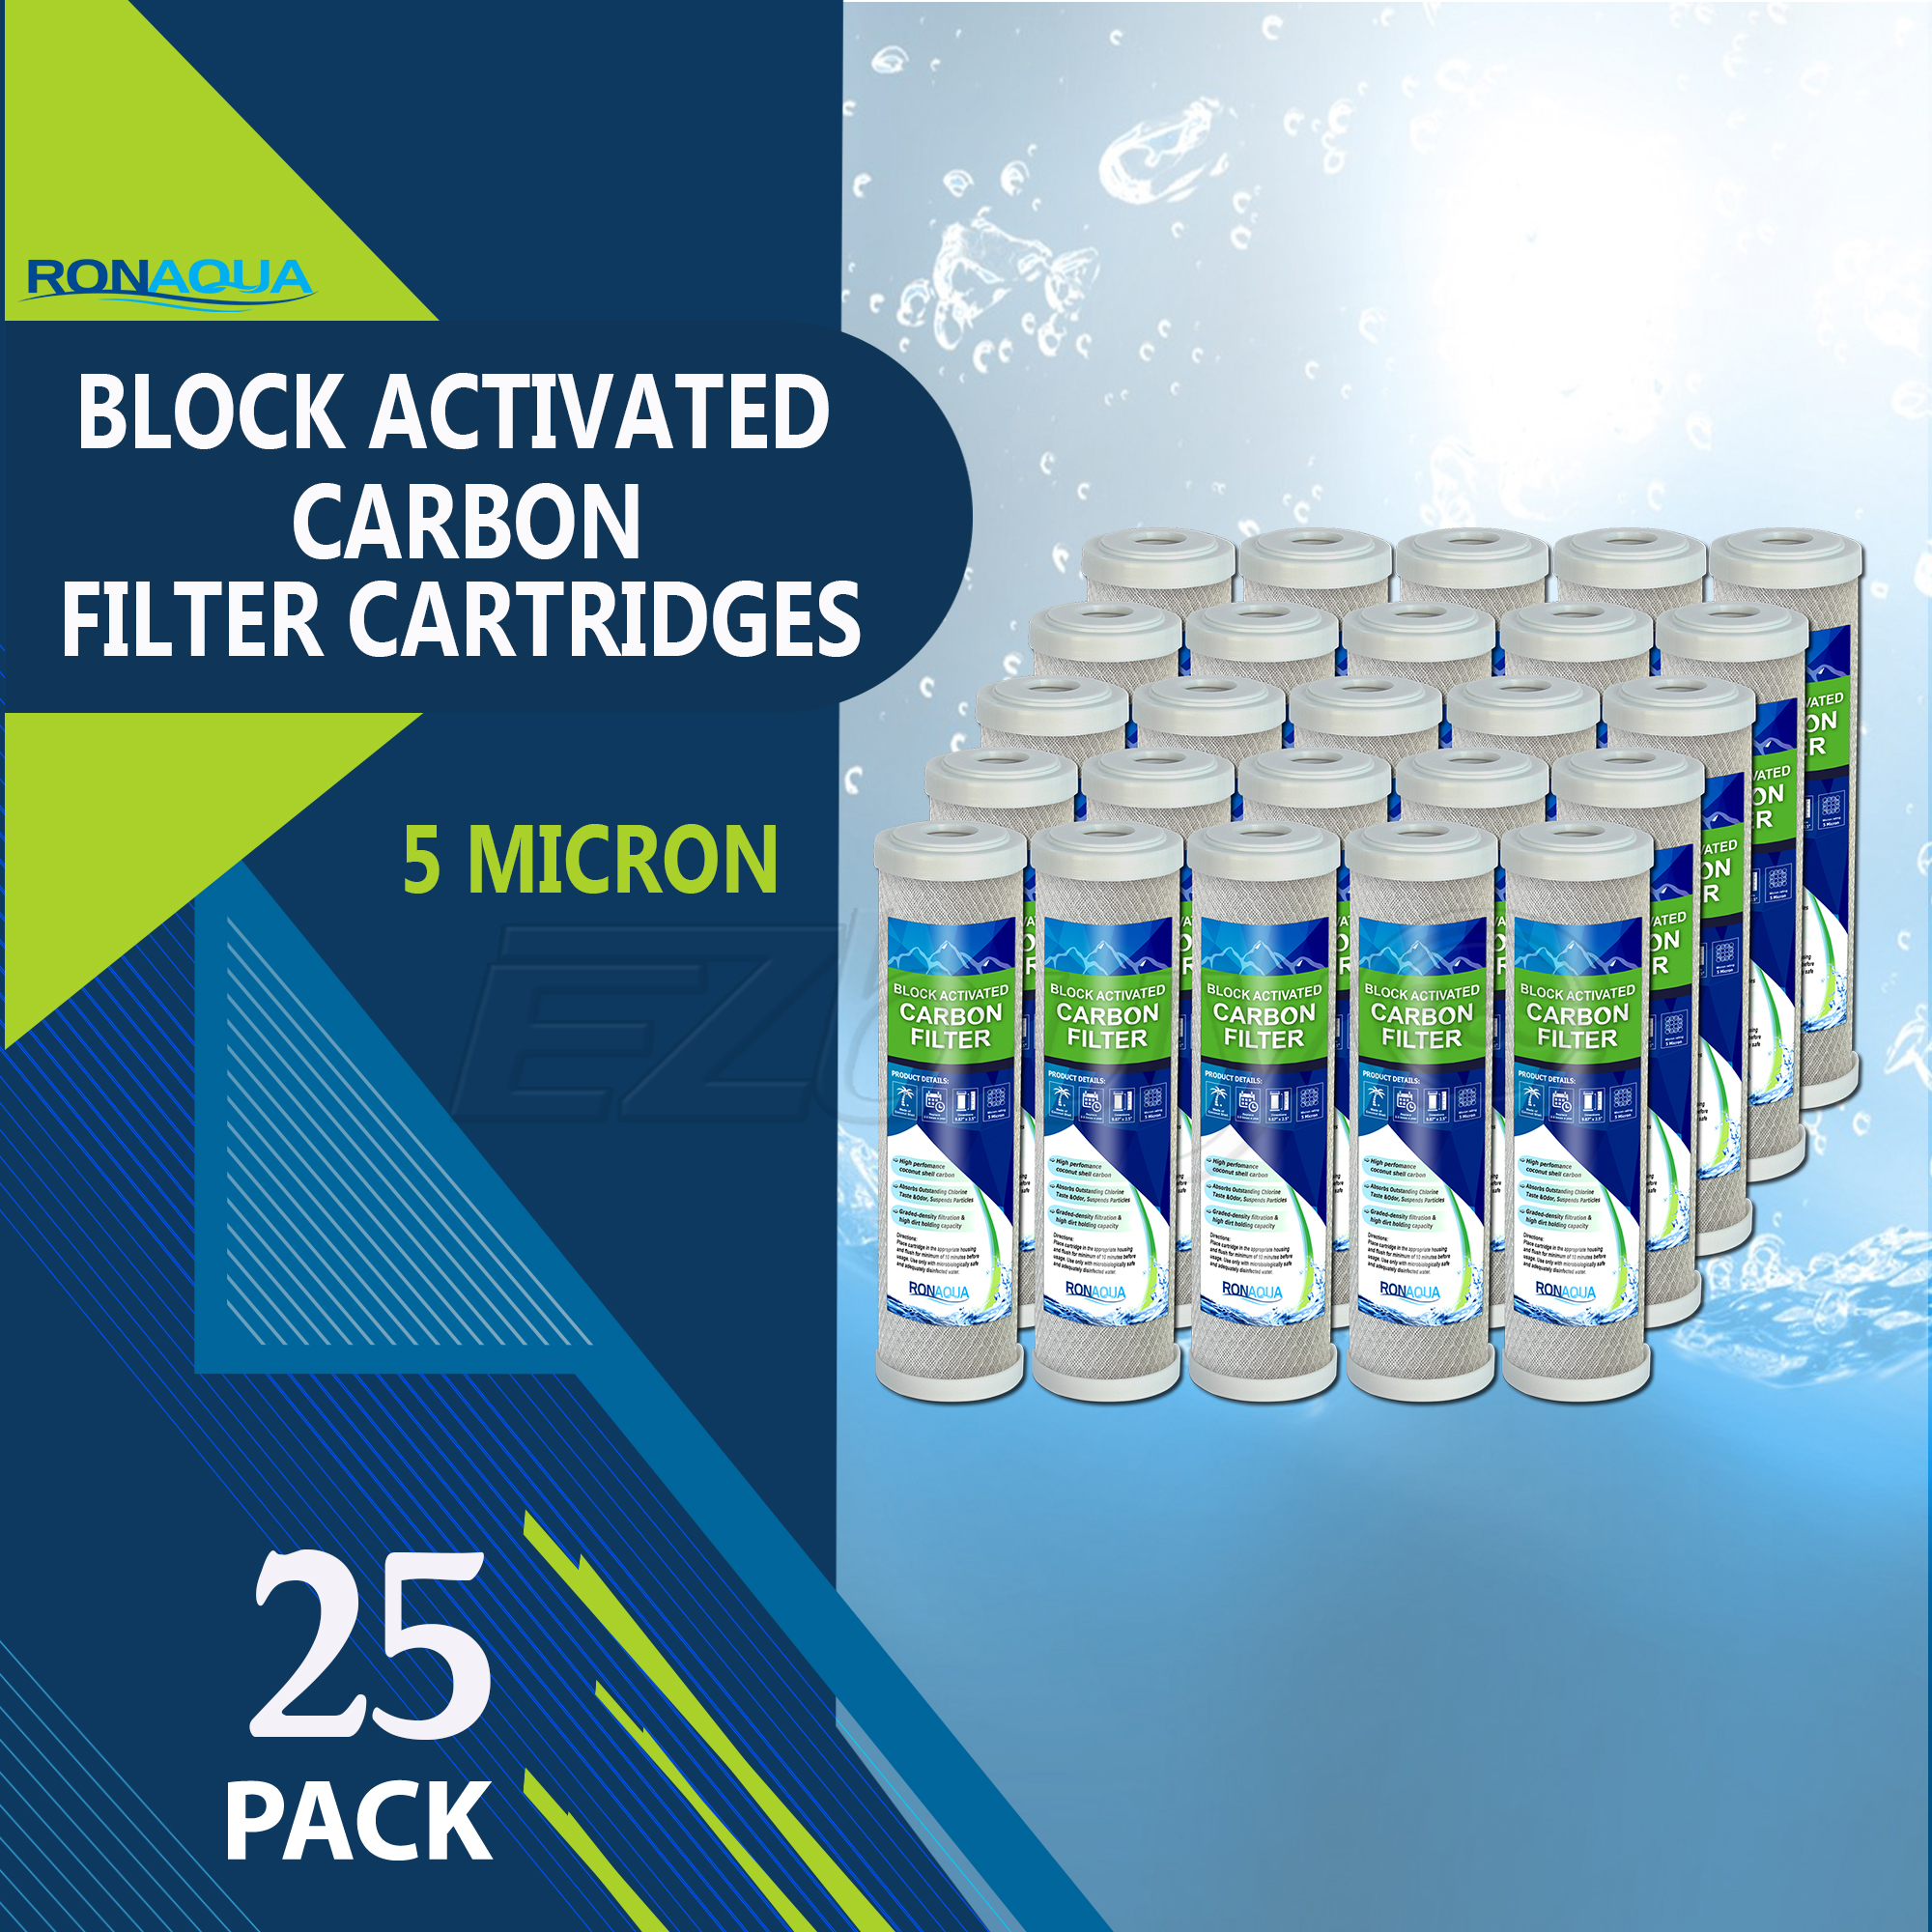 "Block Activated Carbon Coconut Shell Water Filter Cartridge 5 Micron for RO & Standard 10"" Housing by Ronaqua (25 Pack)"